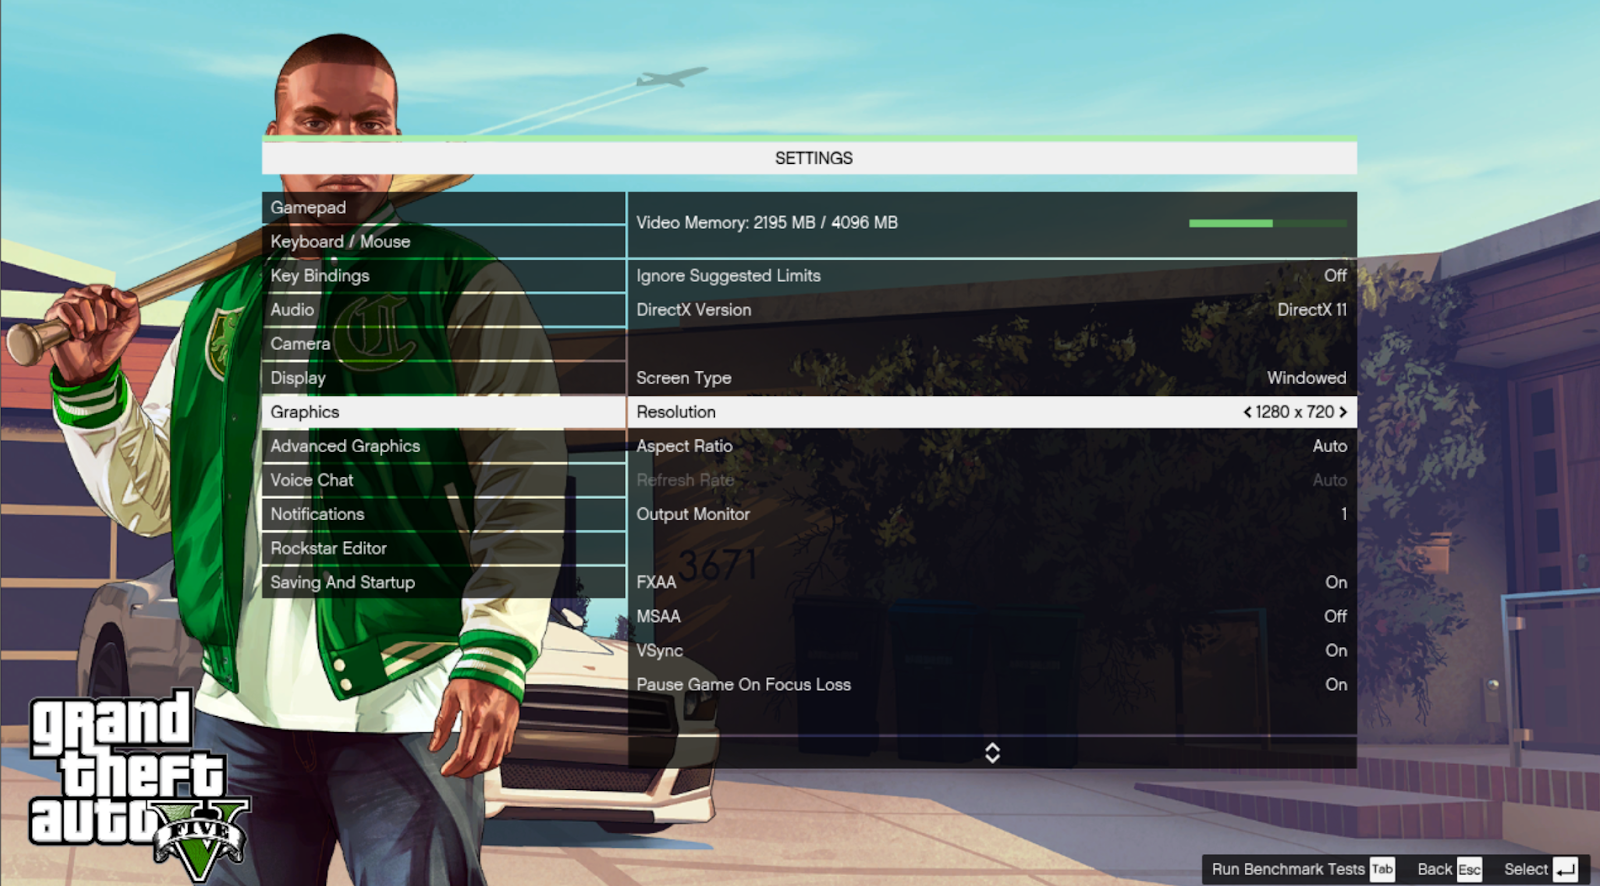 GTA 5 screenshot of the settings